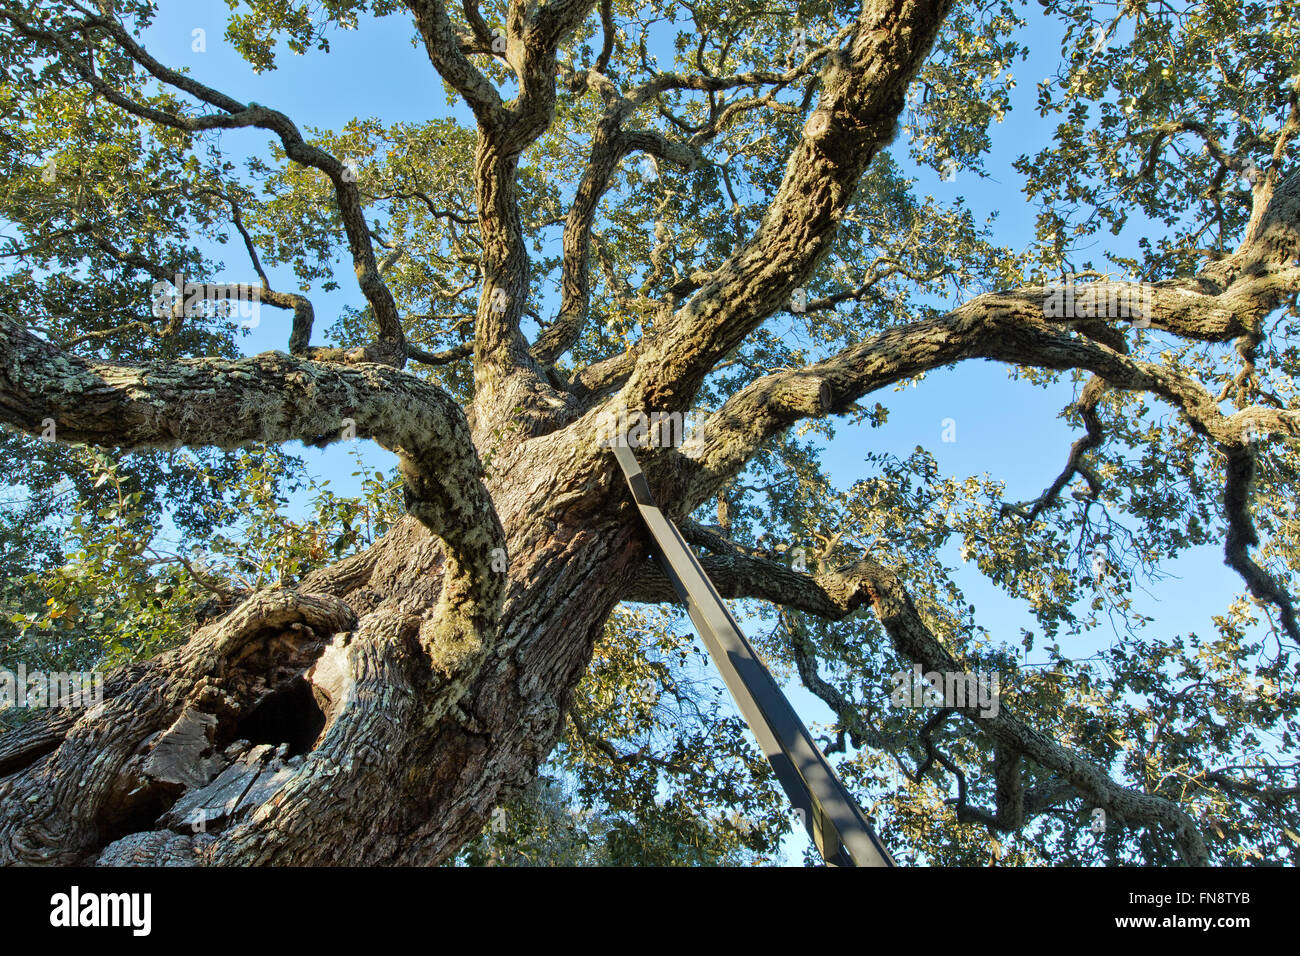 Ancient Southern Live Oak, being supported by iron frame. - Stock Image